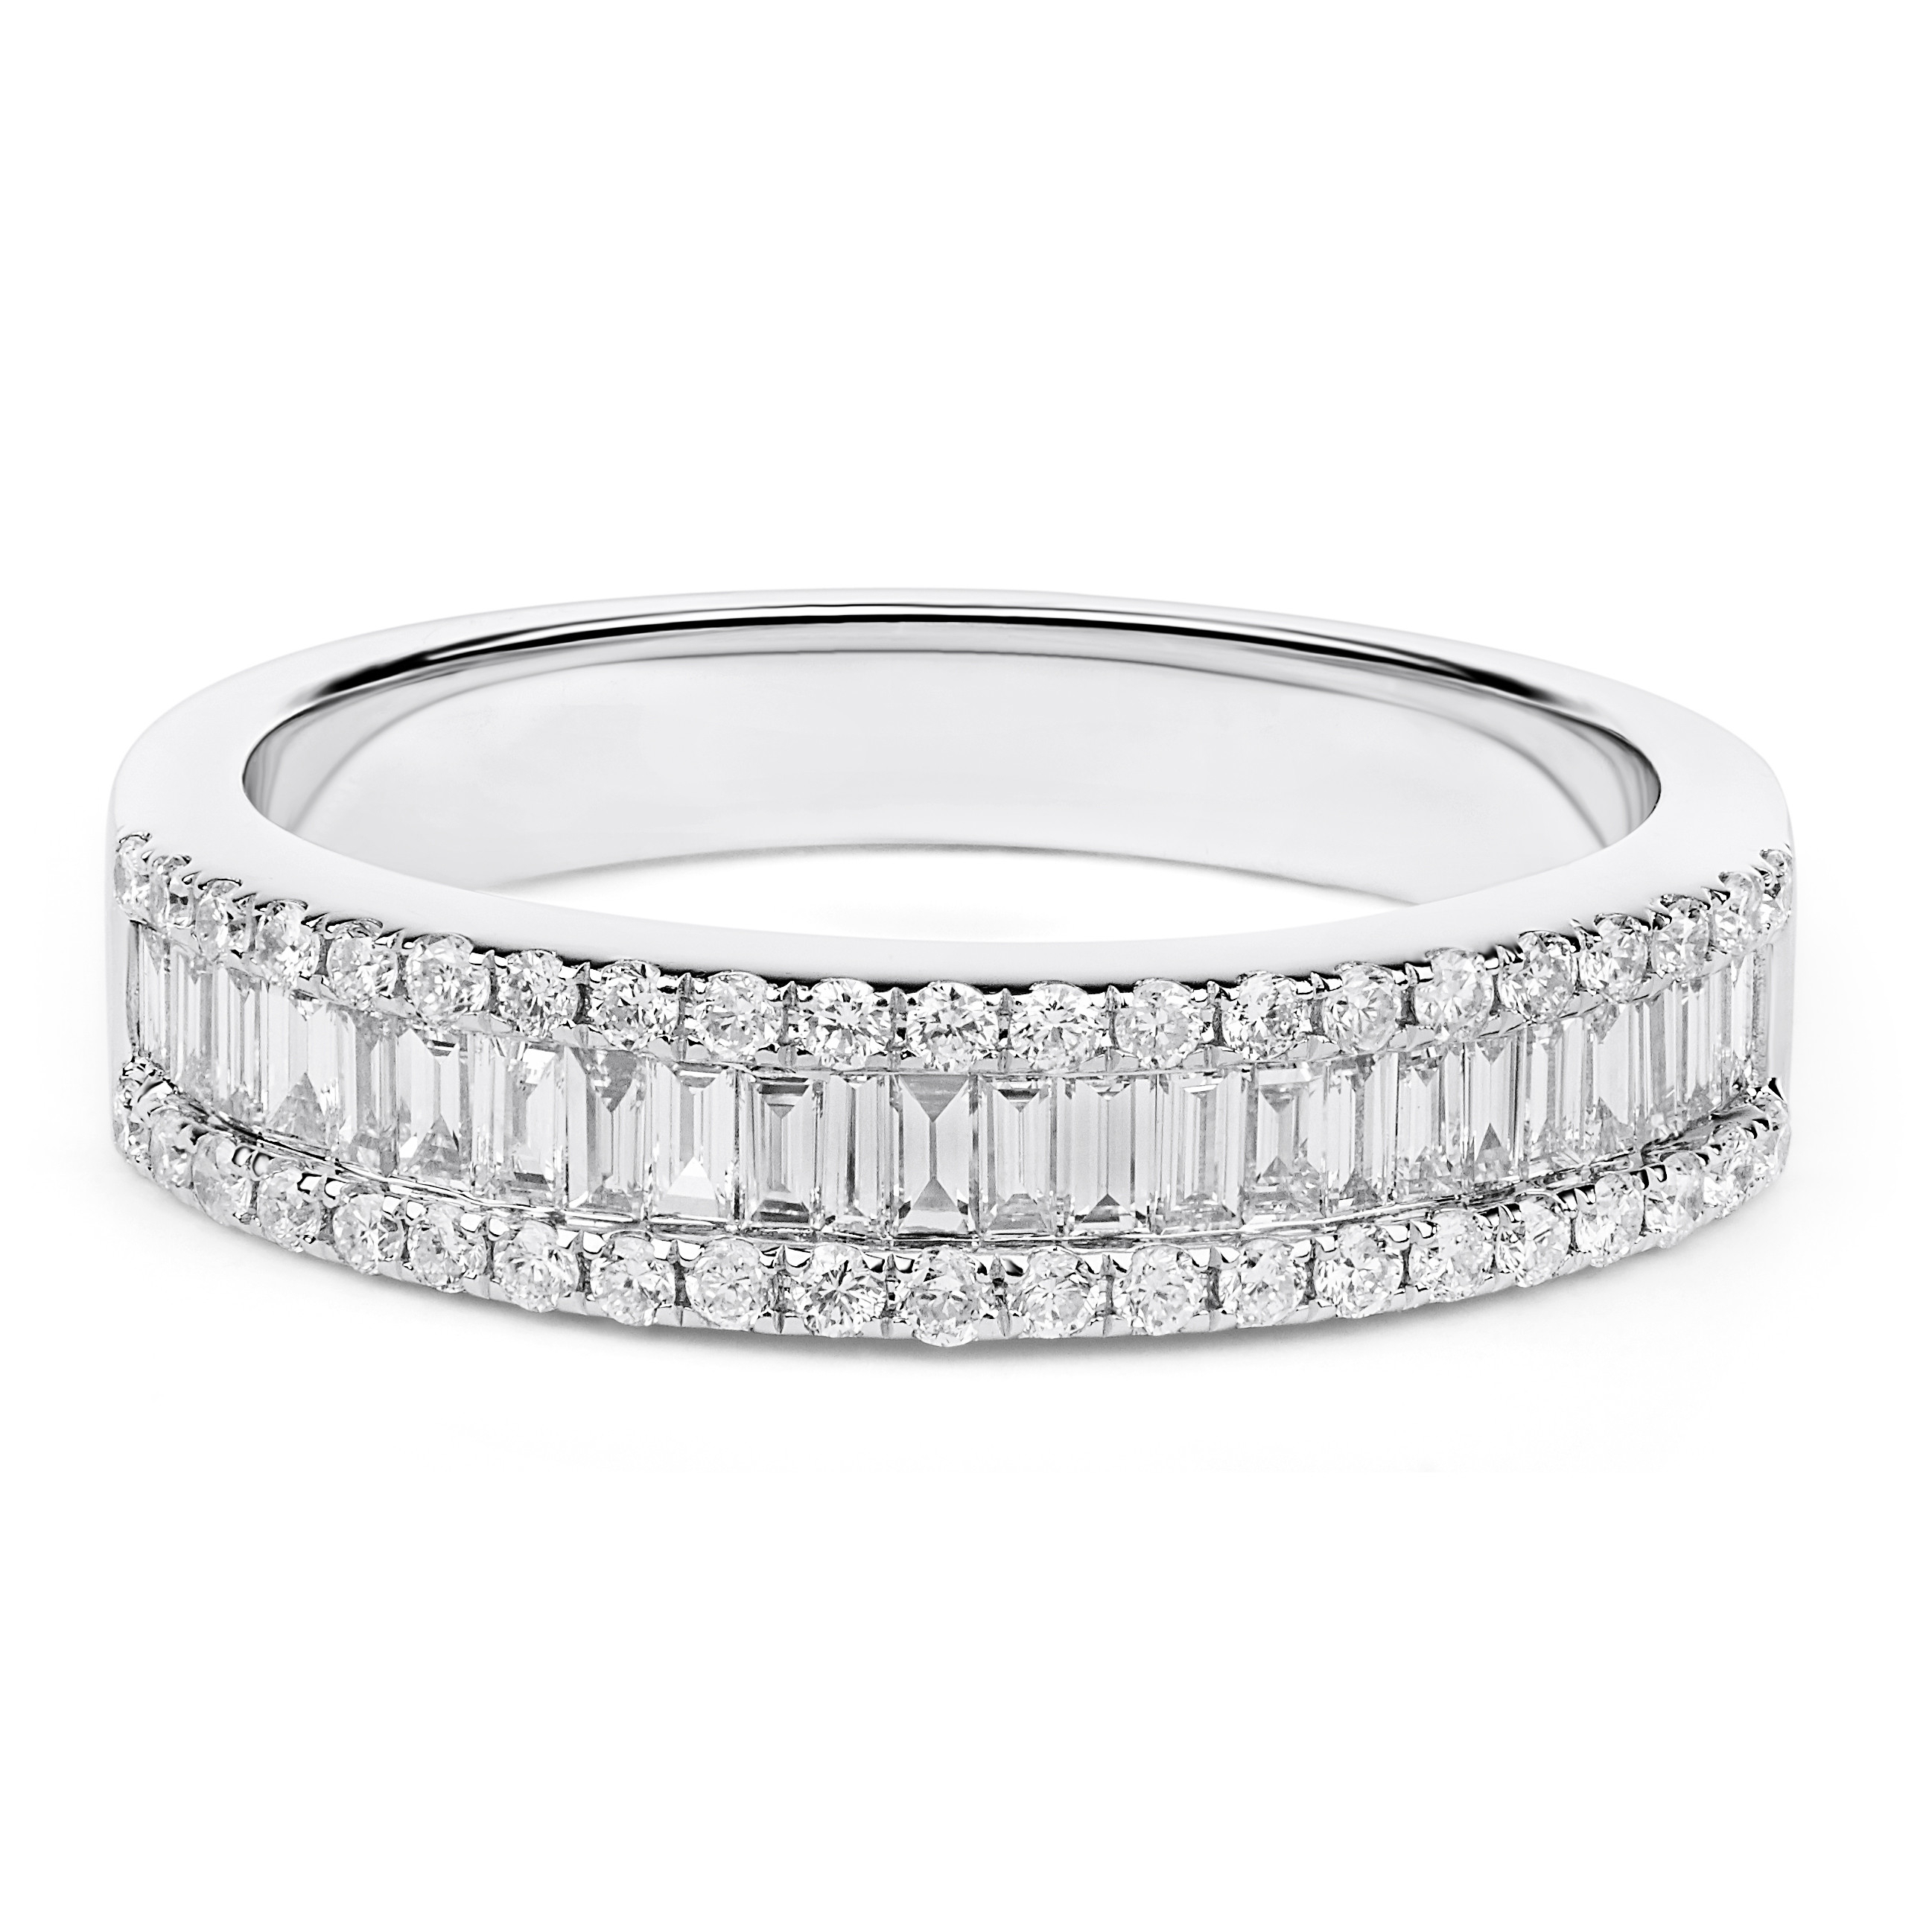 Round And Baguette Diamond Wedding Ring In 18K White Gold (0.49Ct) In Most Recent Round And Baguette Diamond Anniversary Bands In White Gold (Gallery 1 of 25)